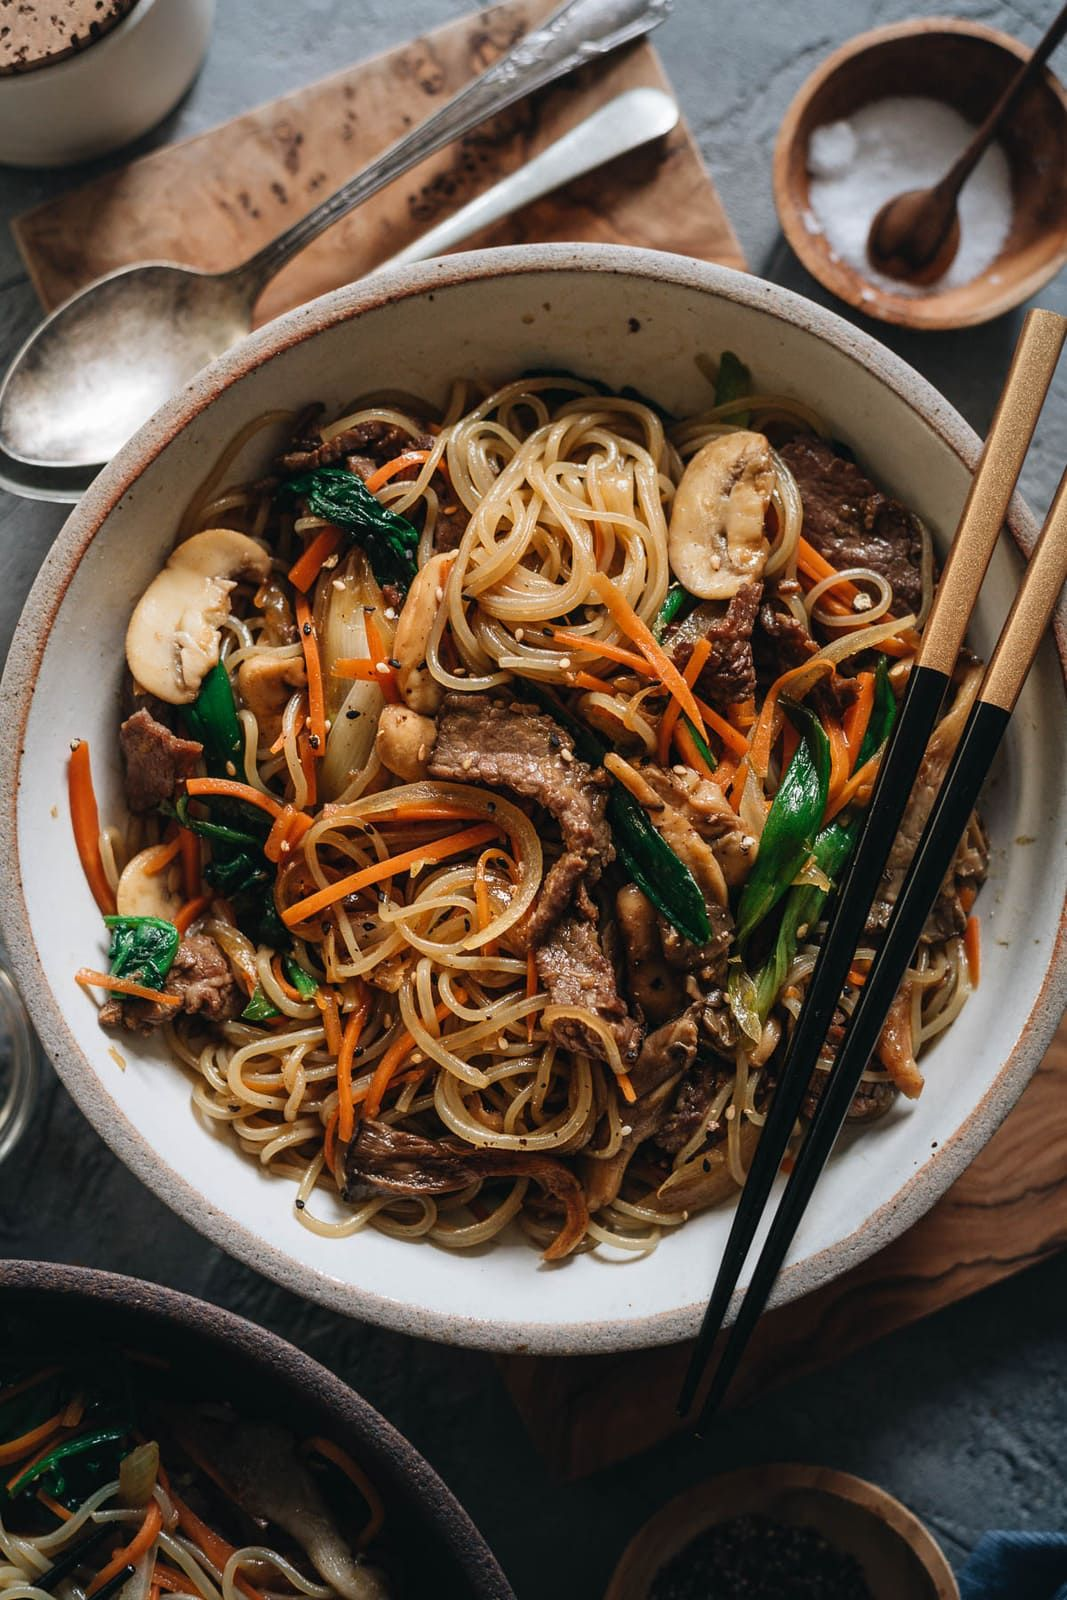 Japchae Korean Sweet Potato Noodles Make Japchae At Home For A Comforting Delicious In 2020 Korean Sweet Potato Sweet Potato Noodles Korean Sweet Potato Noodles